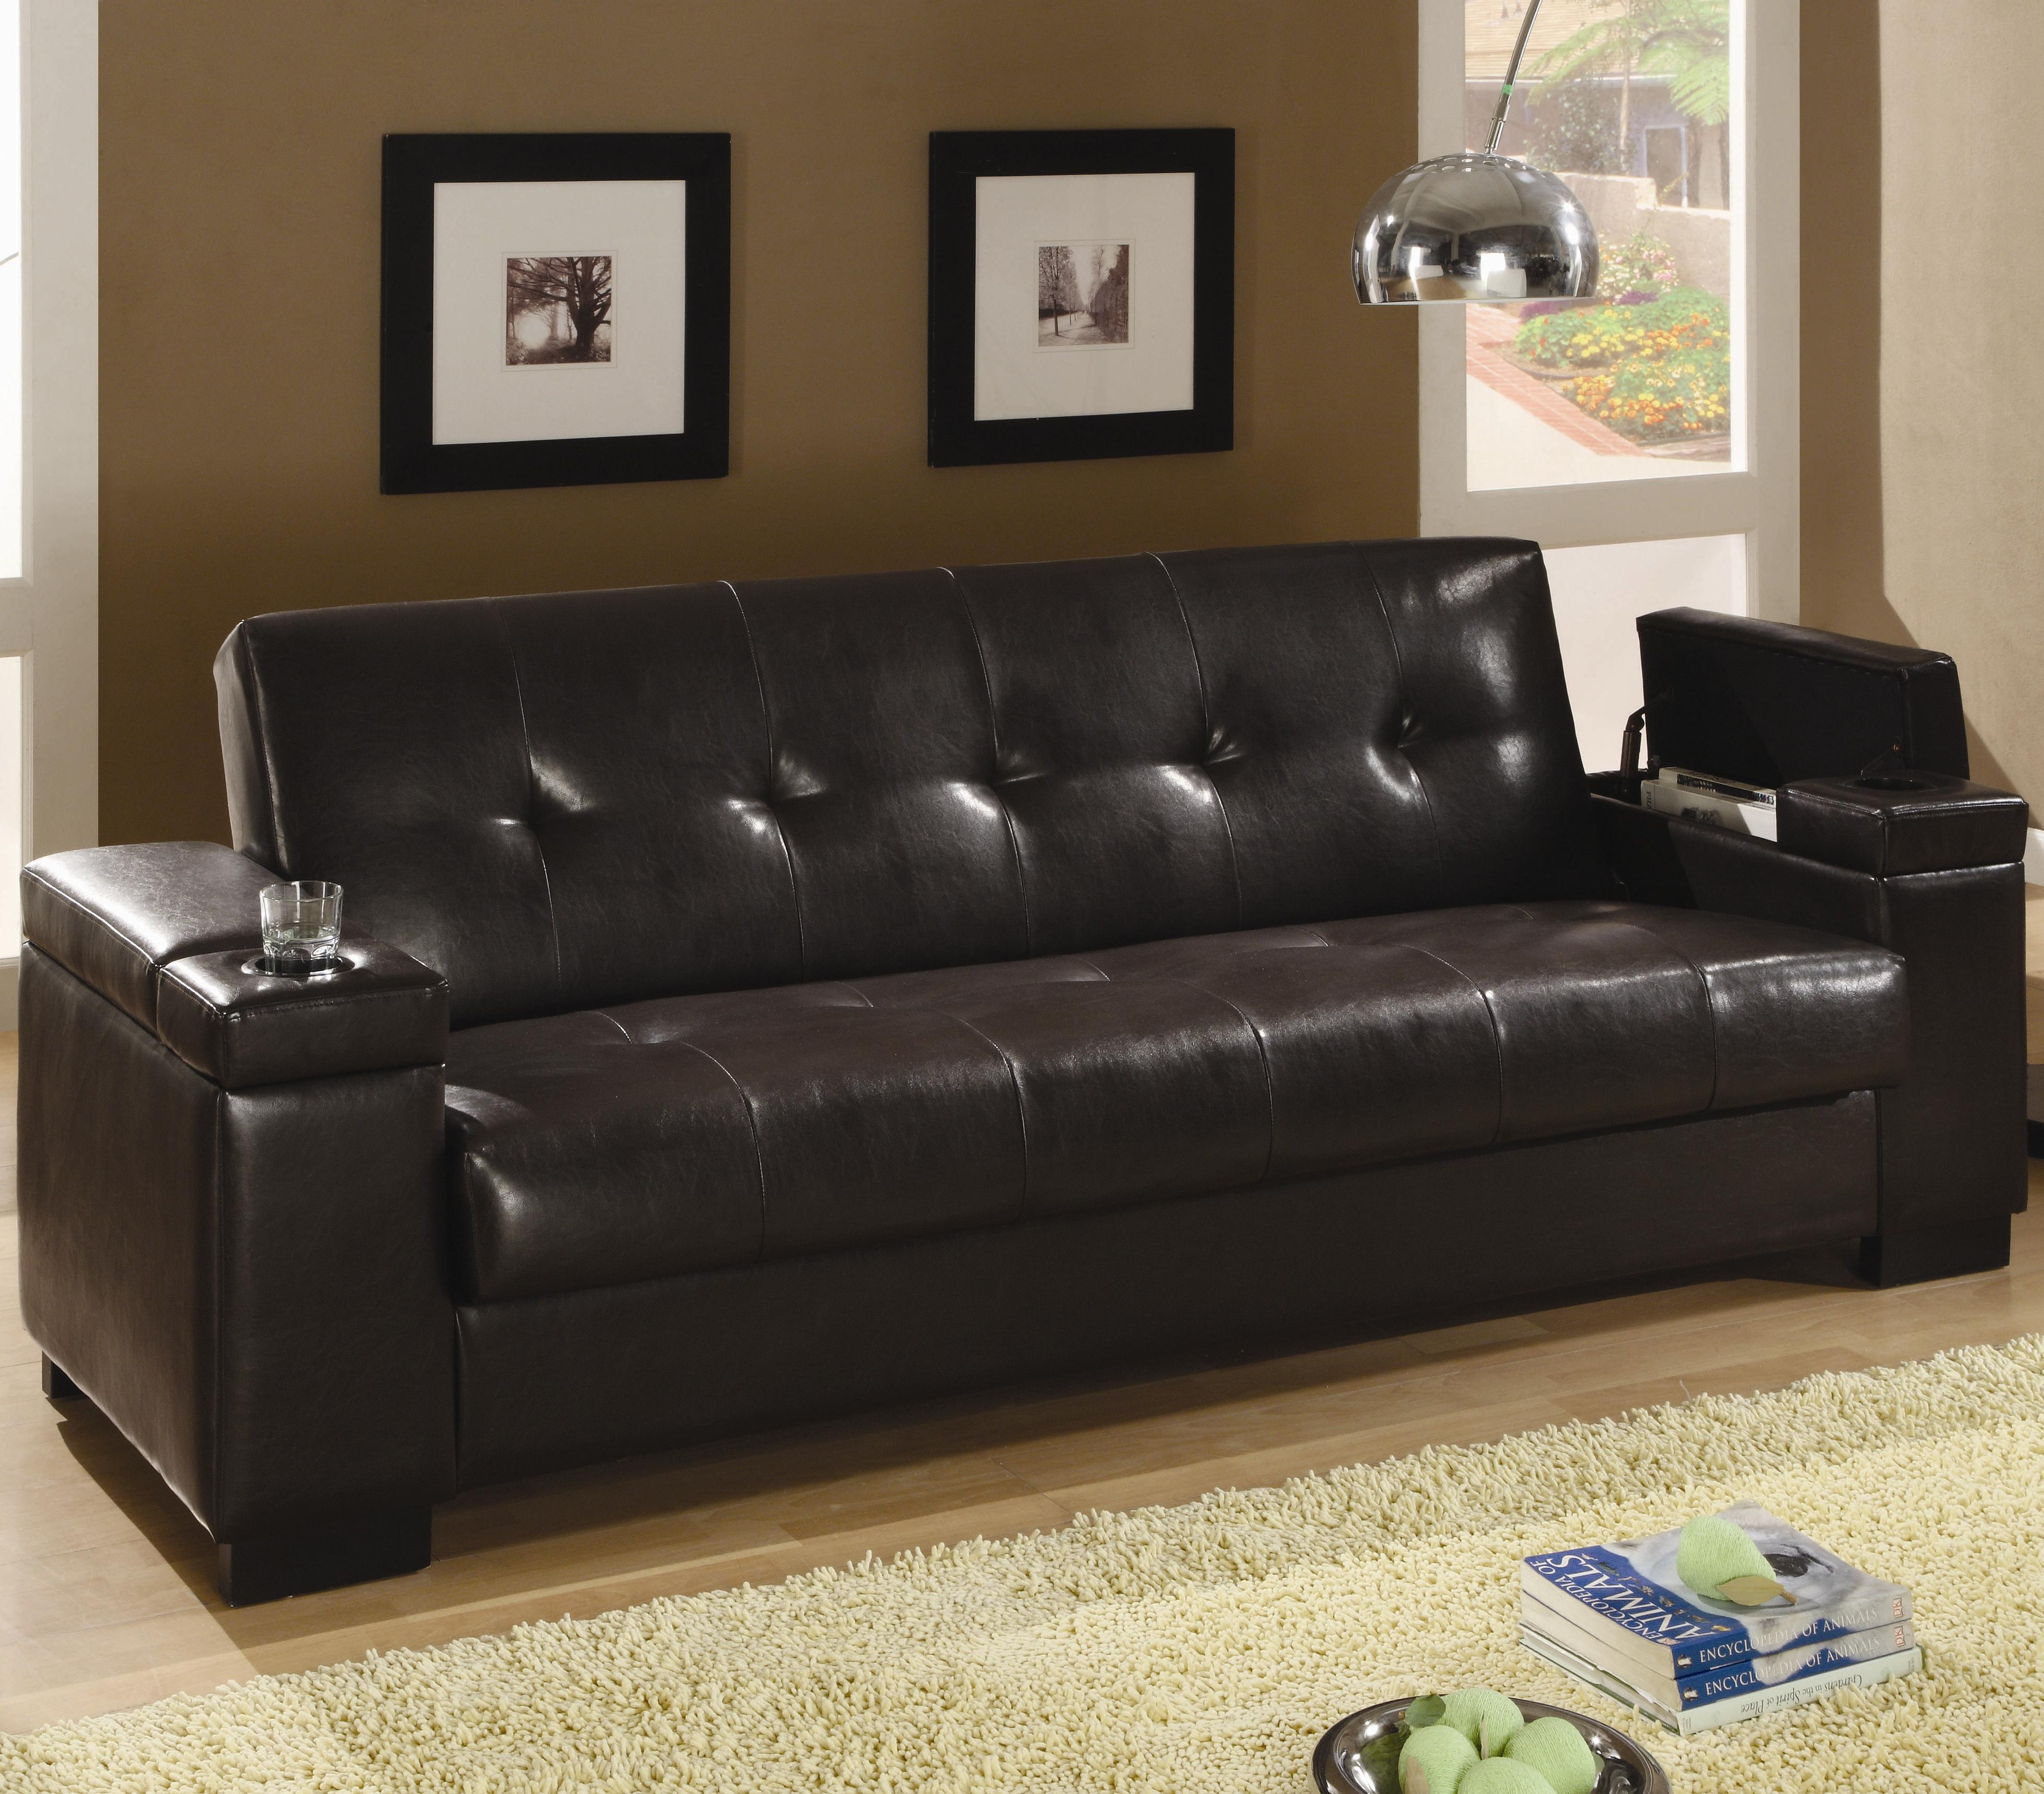 beds nailhead trim sofa shop velvet futon upholstery bed futons transitional with and